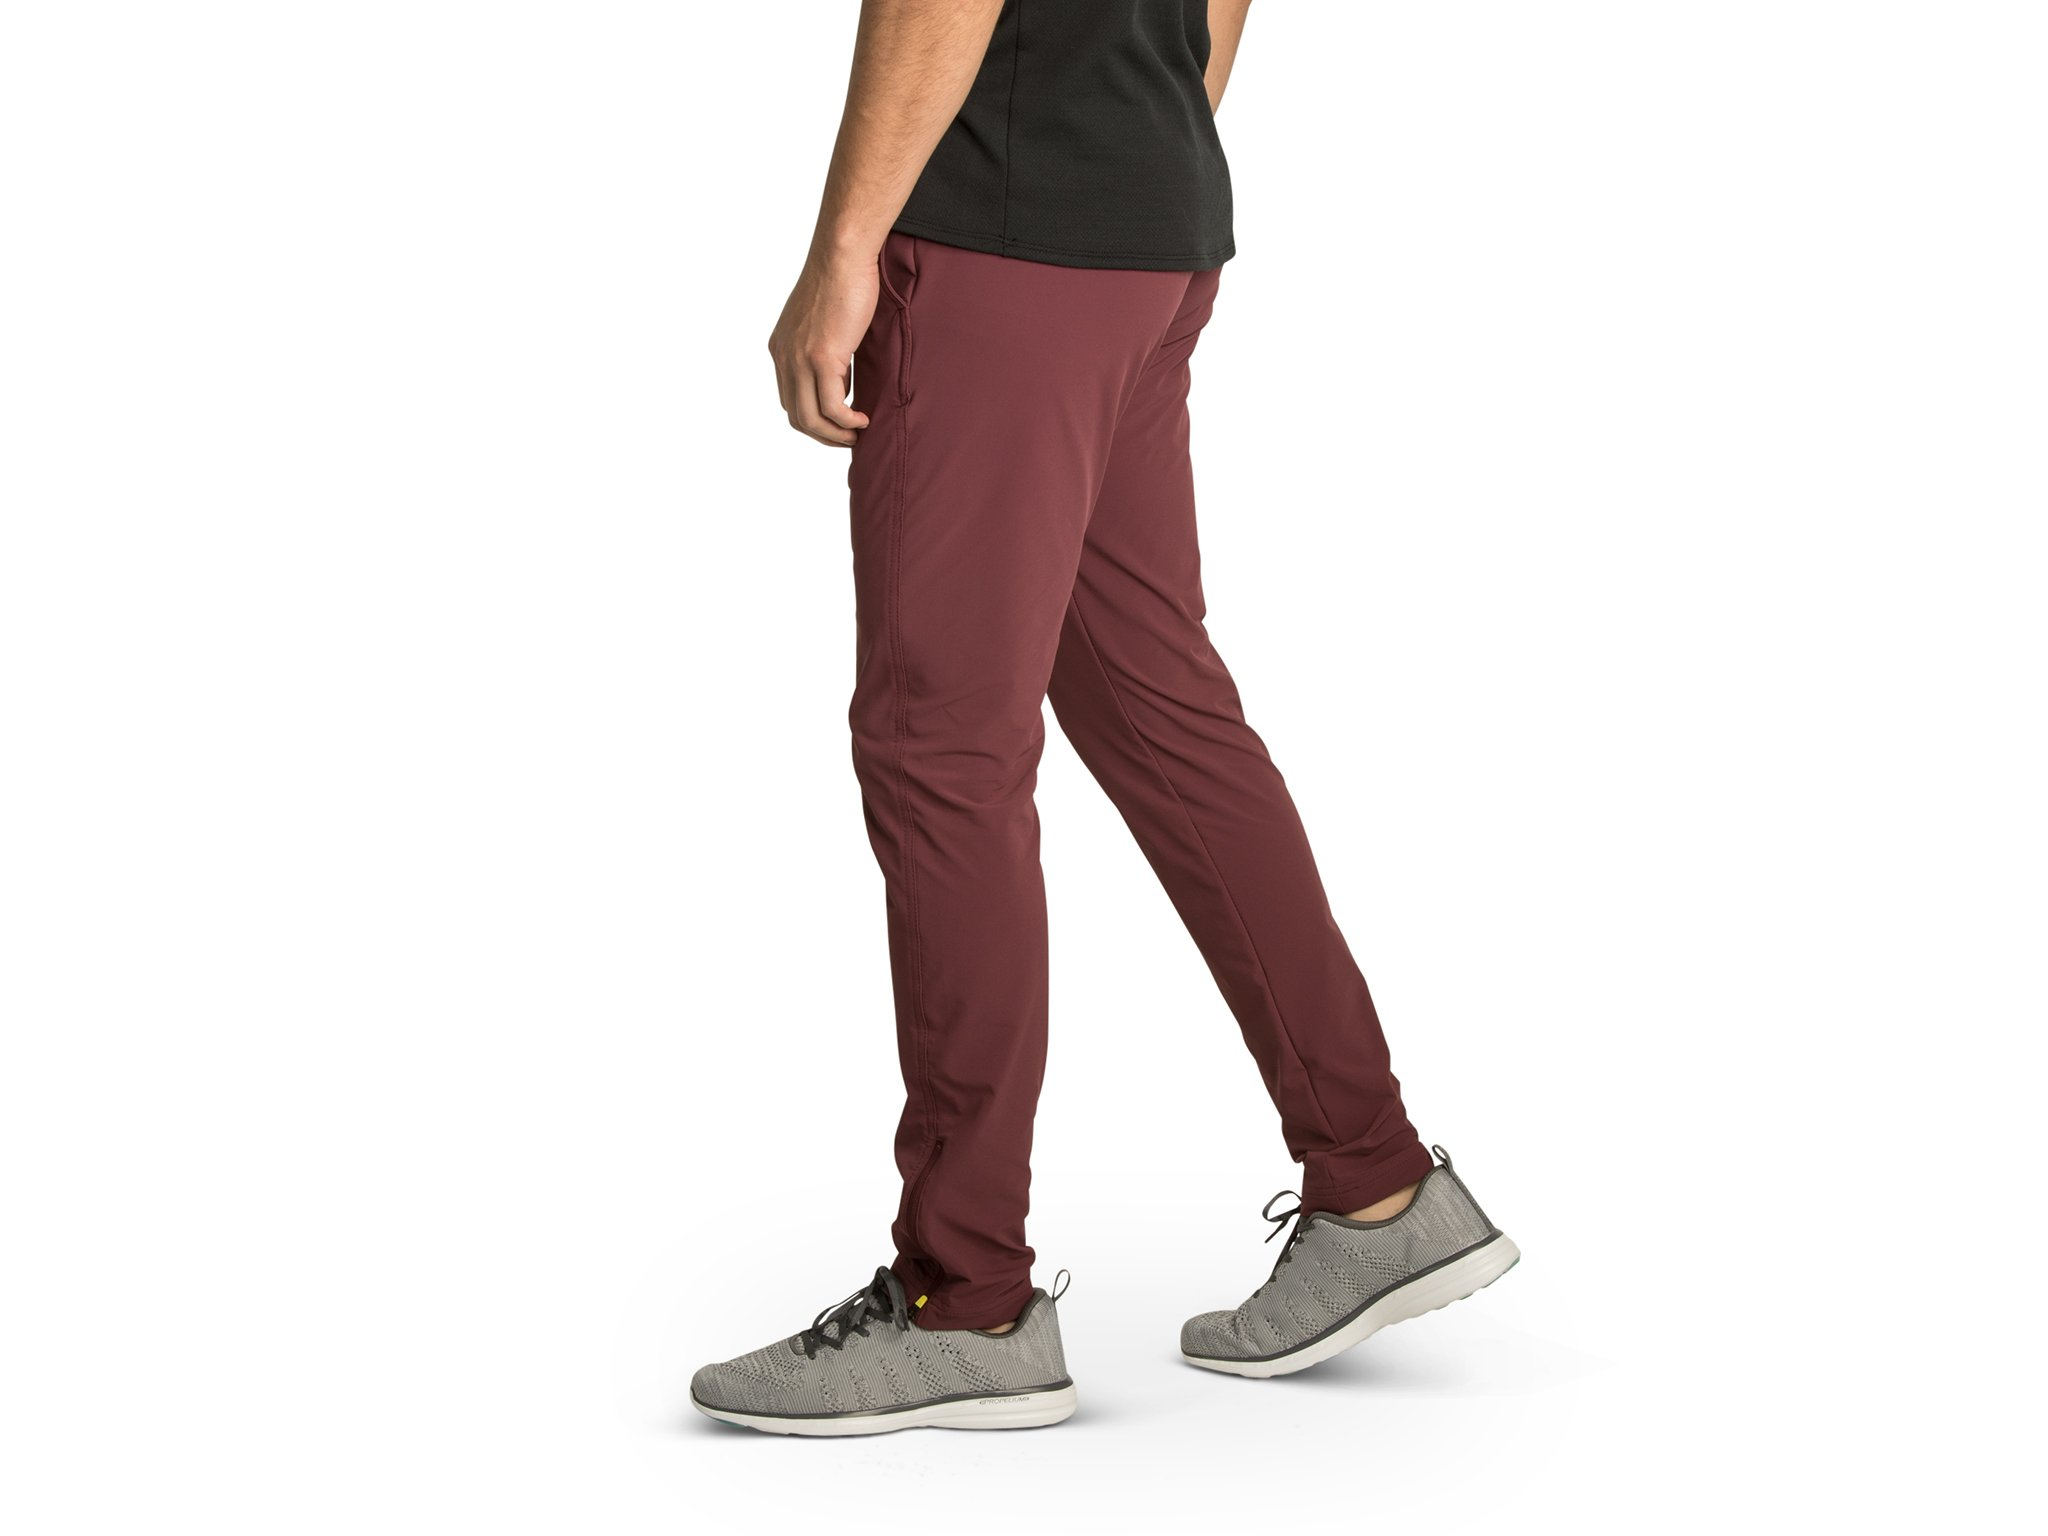 OLIVERS Apparel, Water Repellant, Athletic Cut, 4-Way Stretch, Bradbury Jogger Pants, 31 Inch Inseam - Crimson - Large by OLIVERS (Image #1)